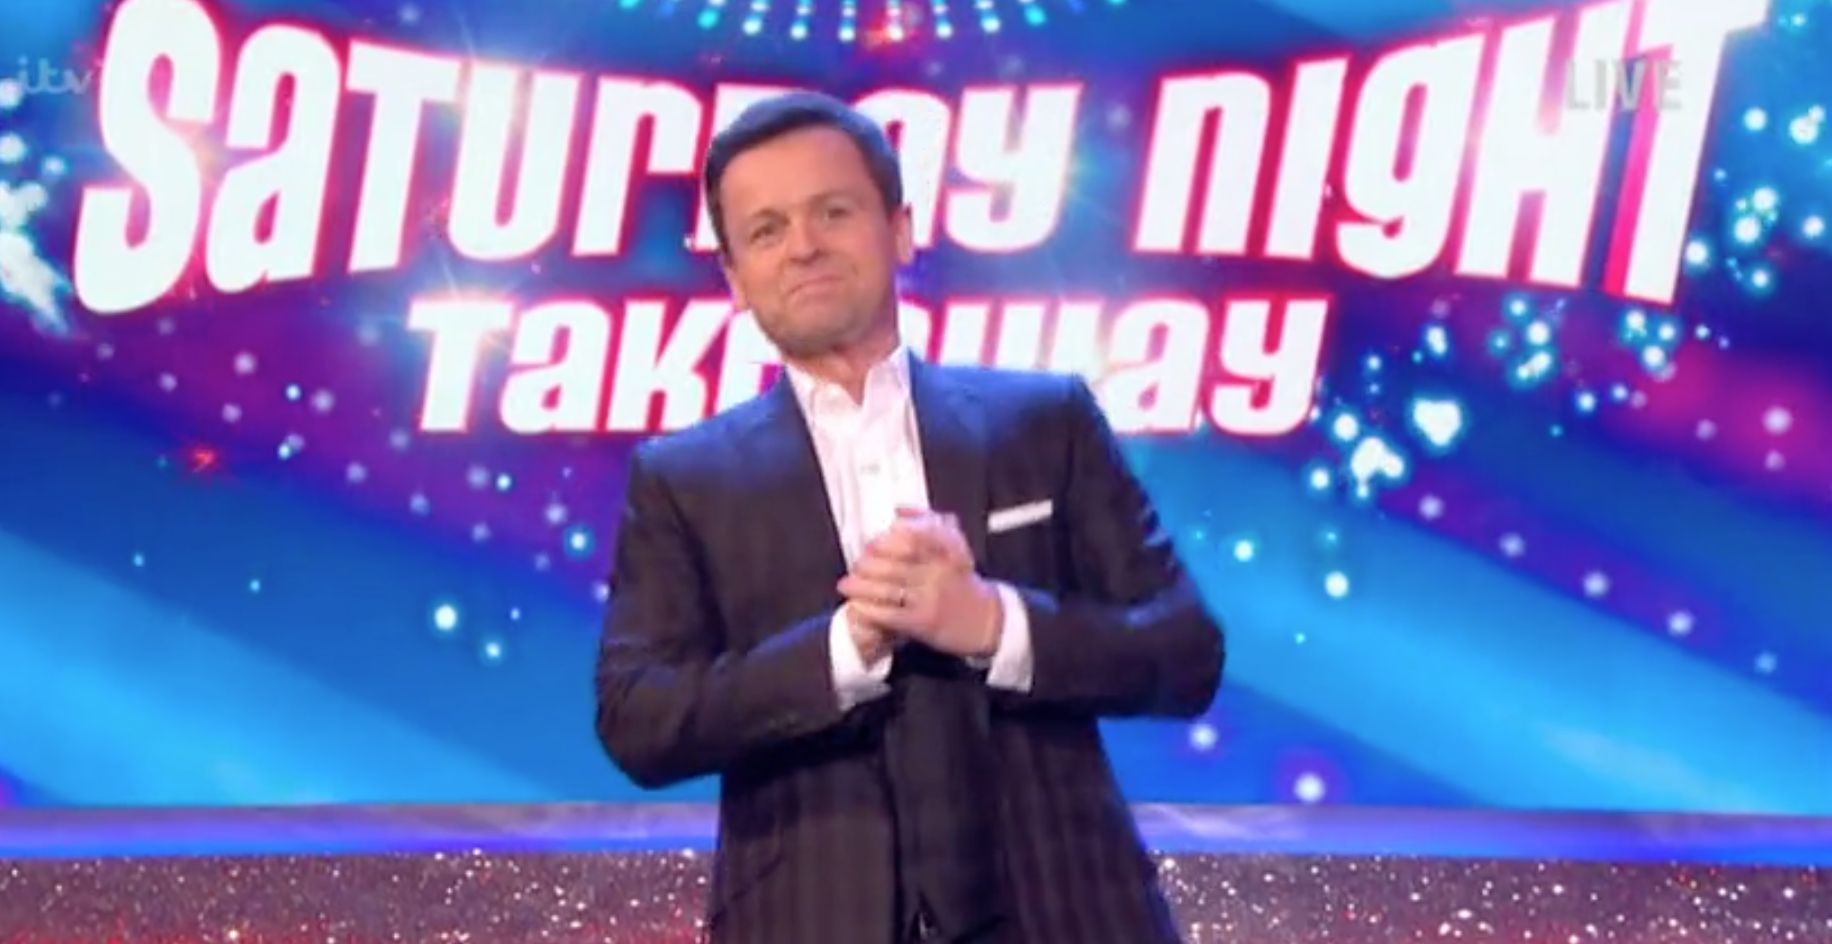 Declan Donnelly to present Saturday Night Takeaway alone